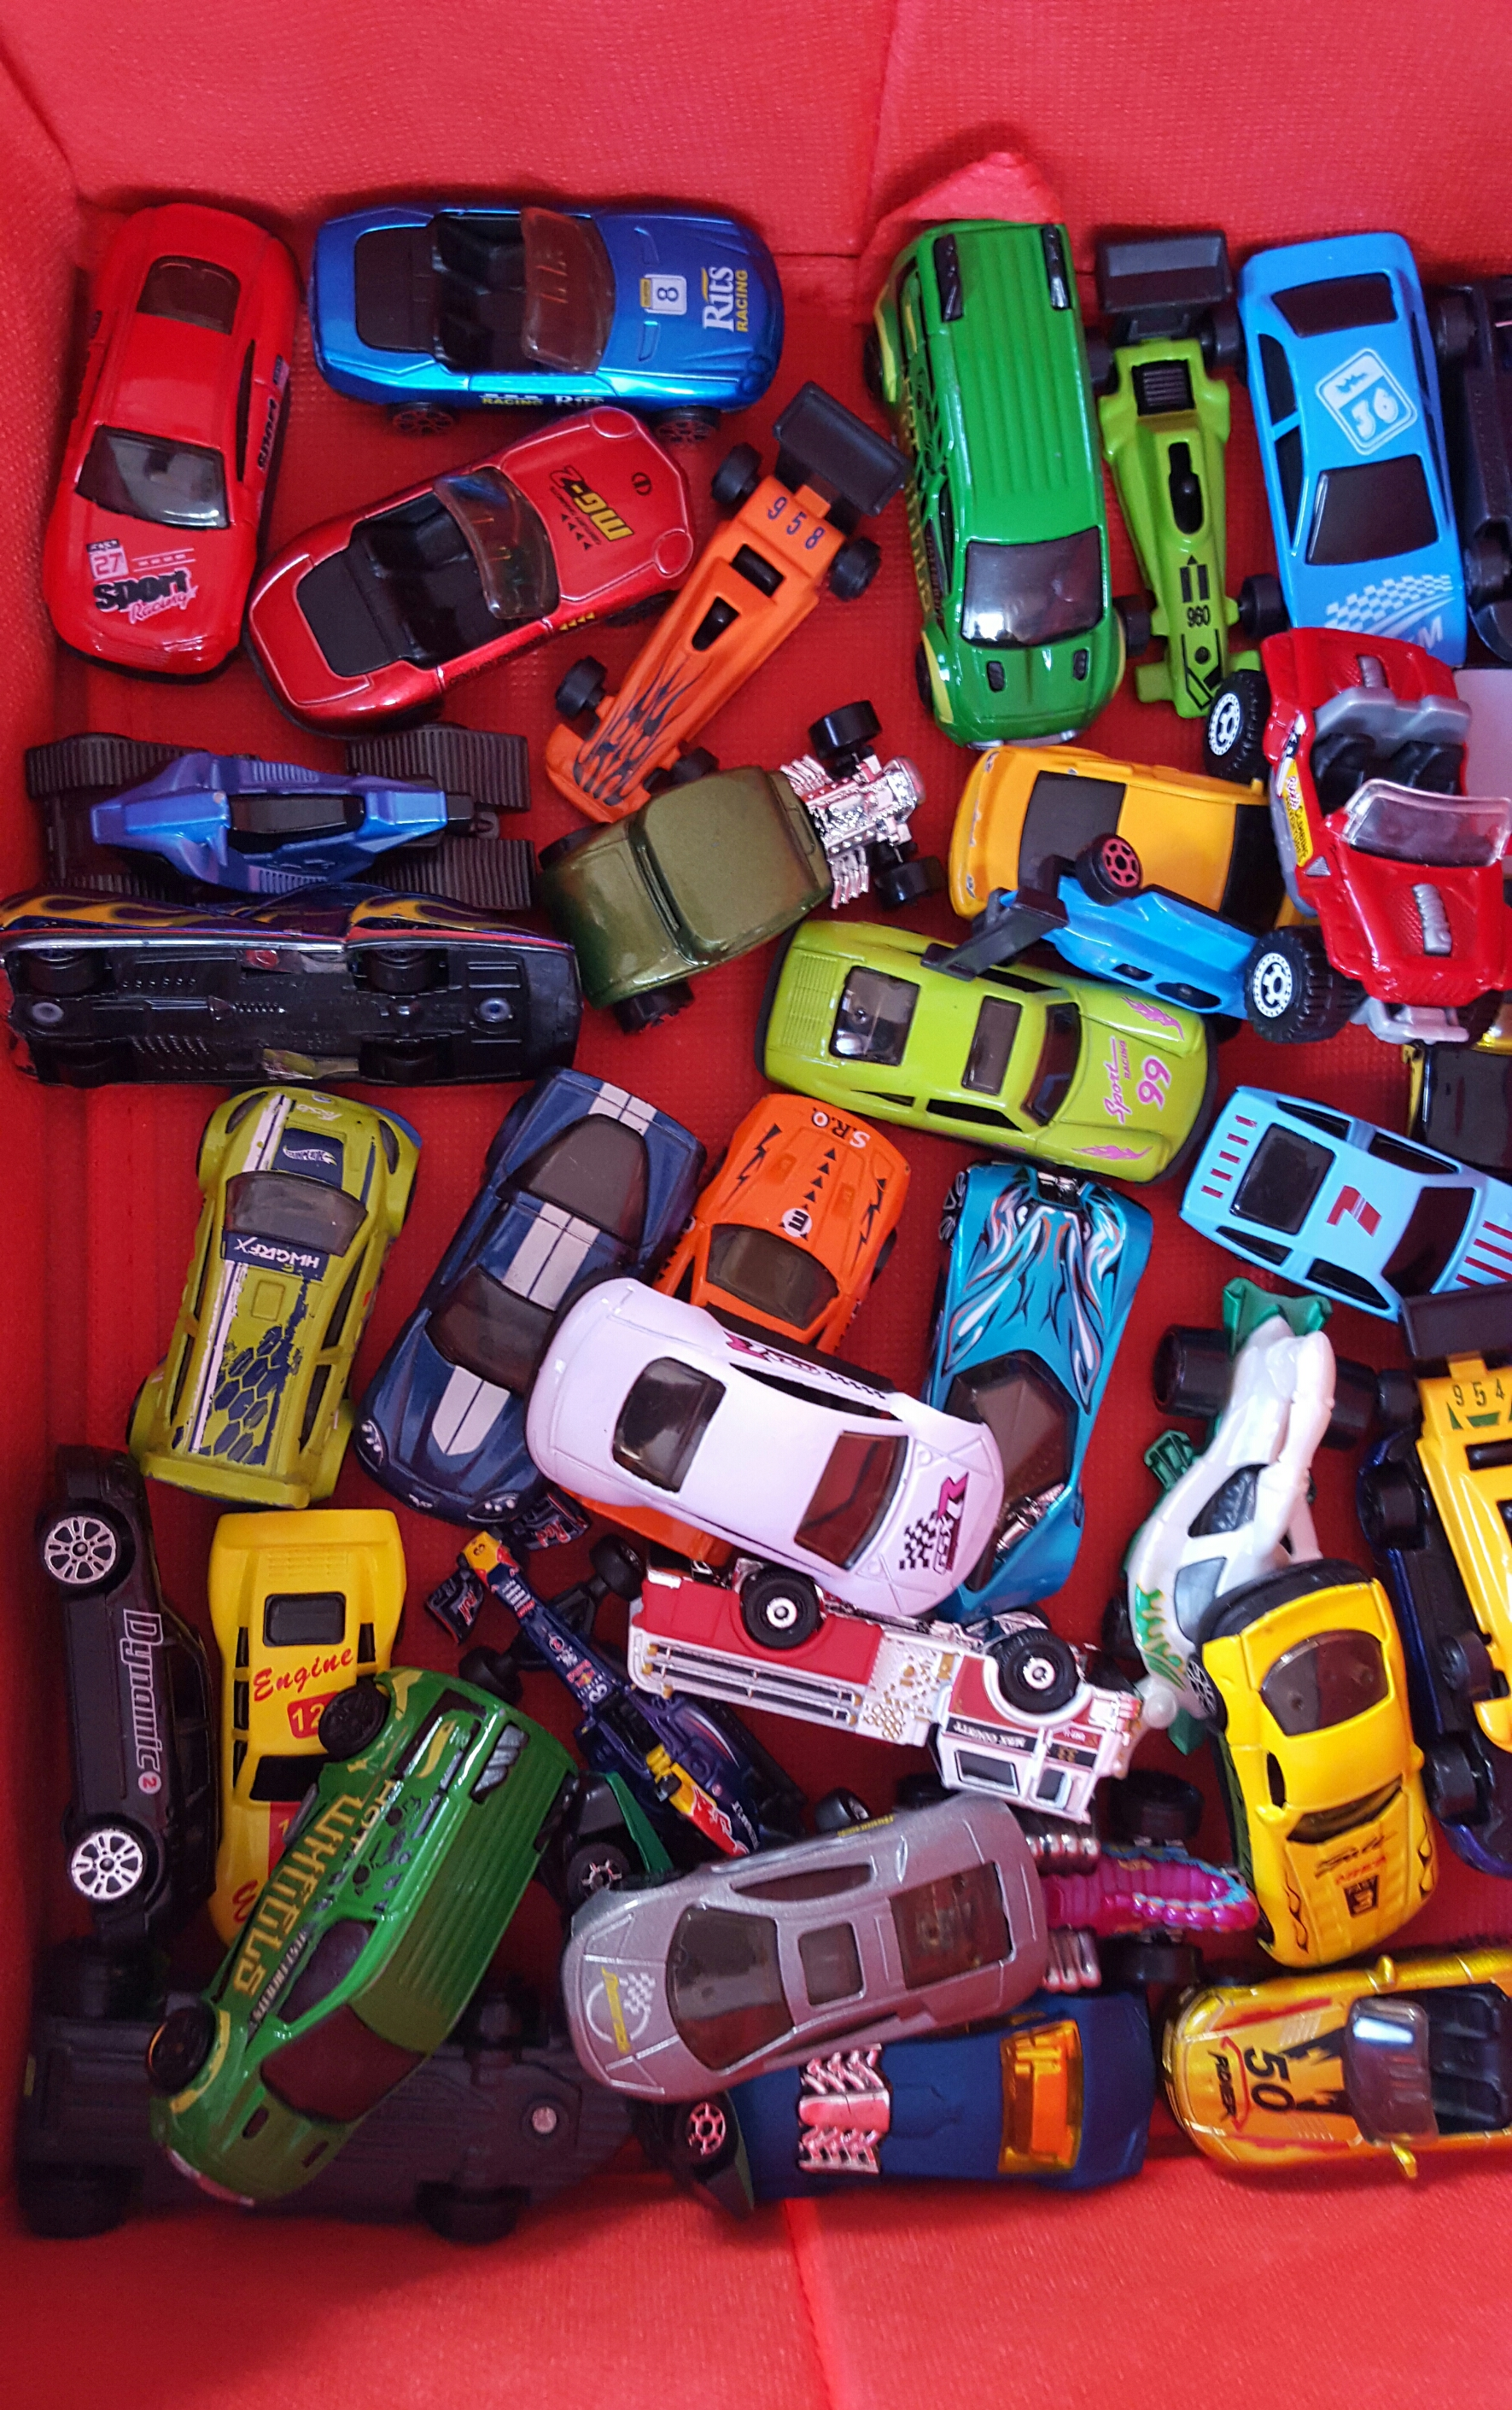 'CAR'dinal rules (or how to 'play cars' with a toddler)